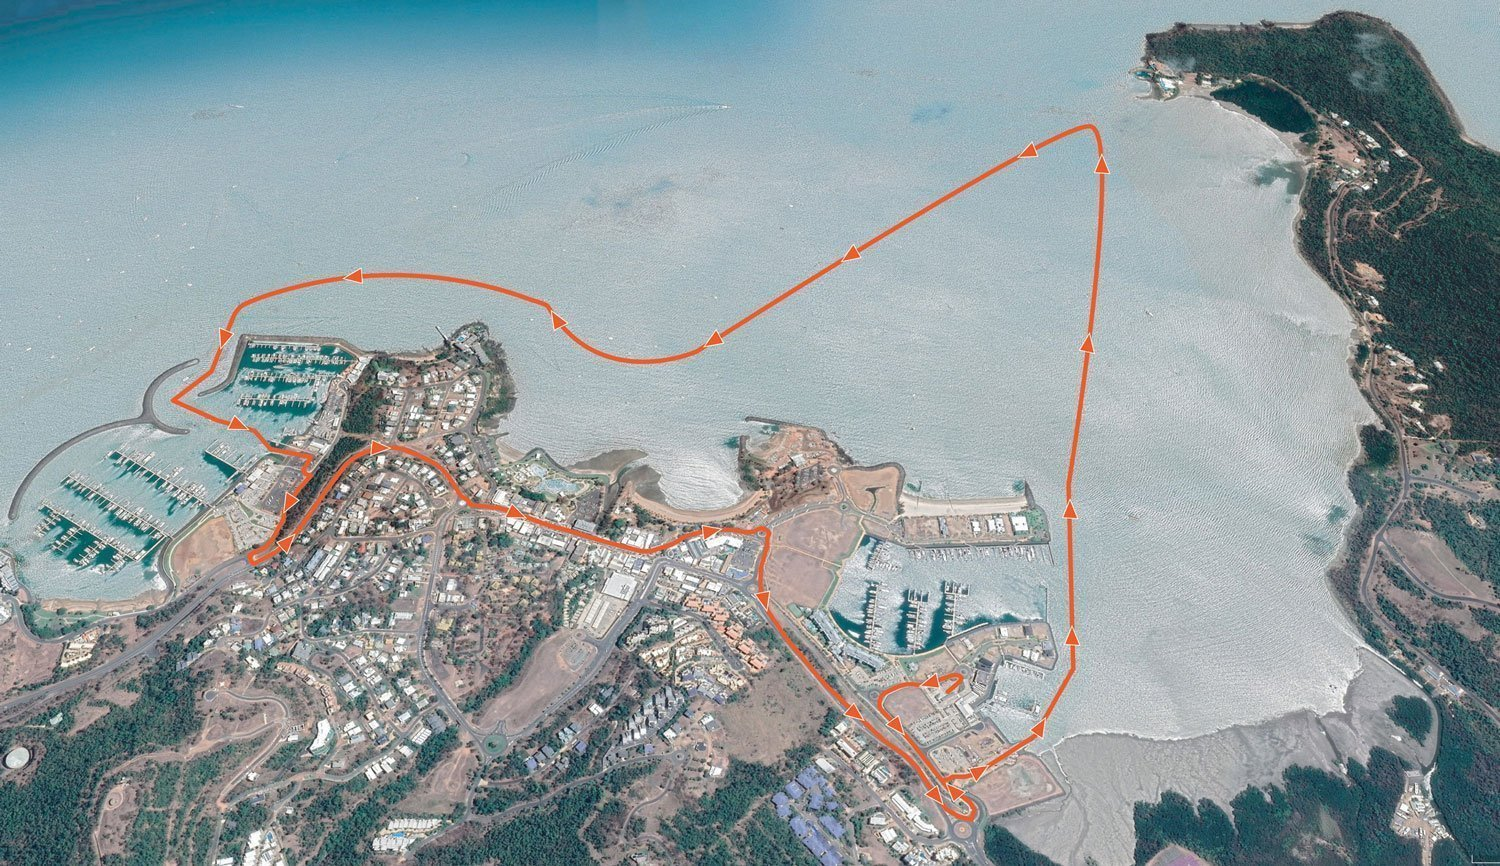 Aerial map of Airlie Beach, Qld